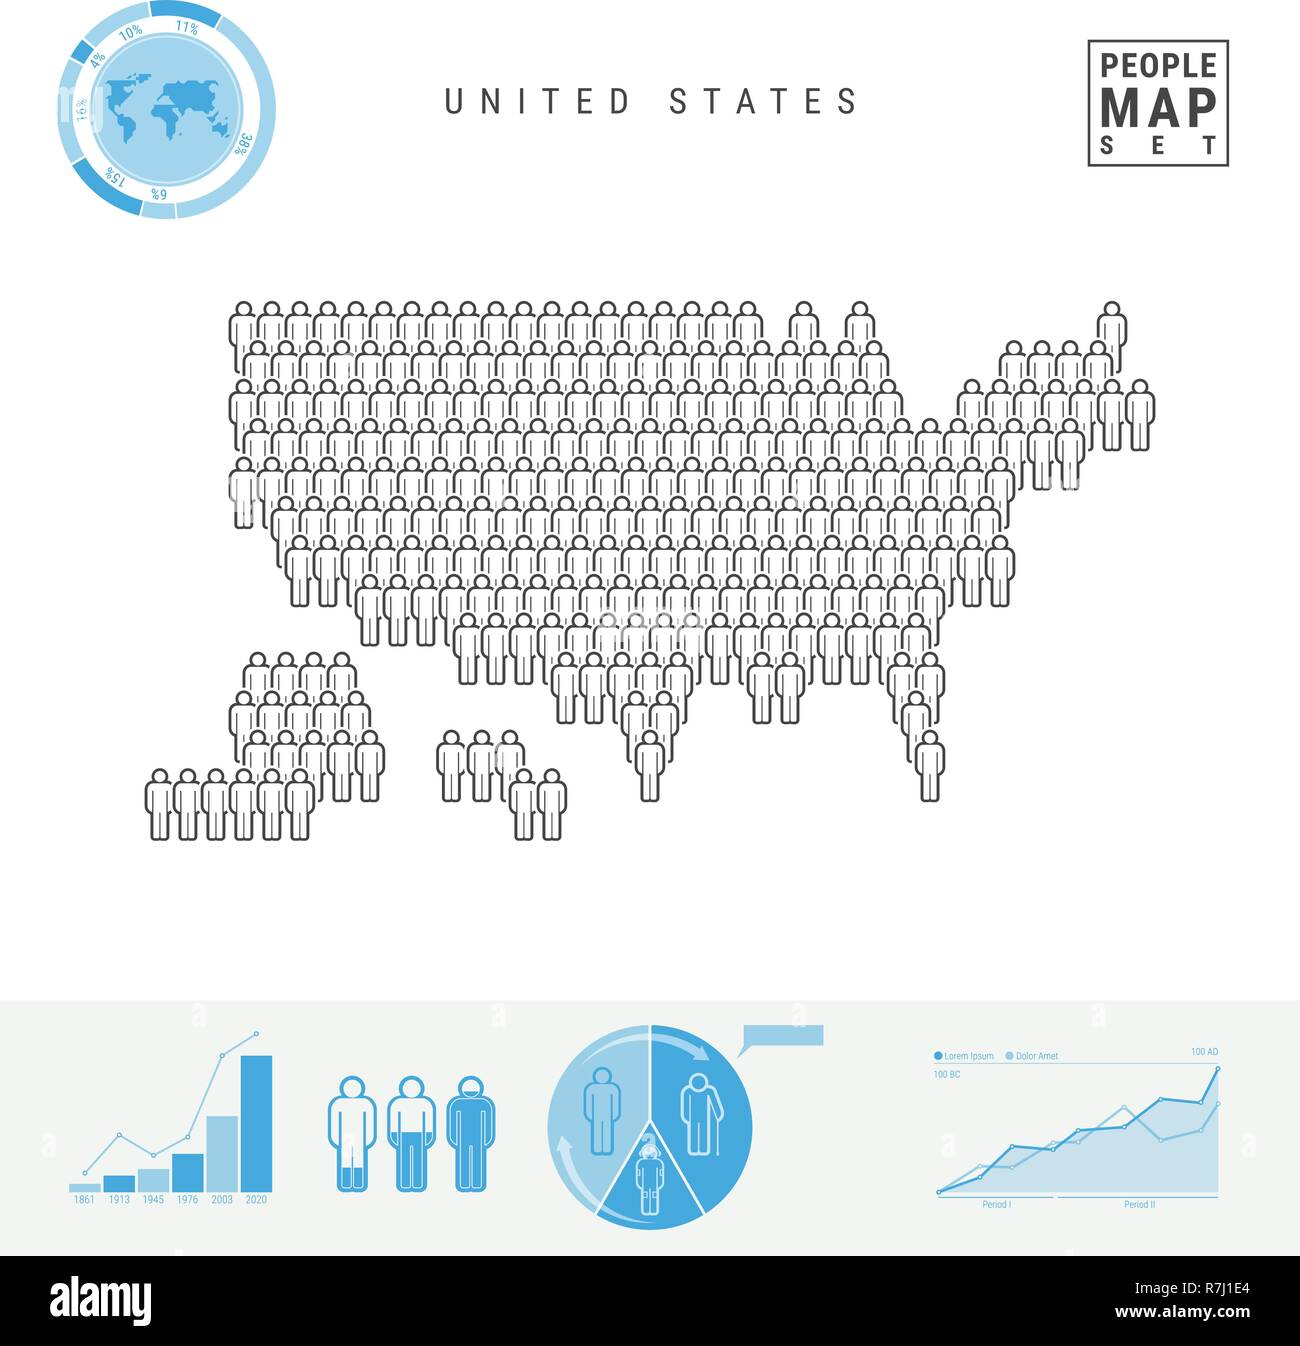 United States People Icon Map. Stylized Vector Silhouette of USA. Population Growth and Aging Infographic Elements Stock Vector